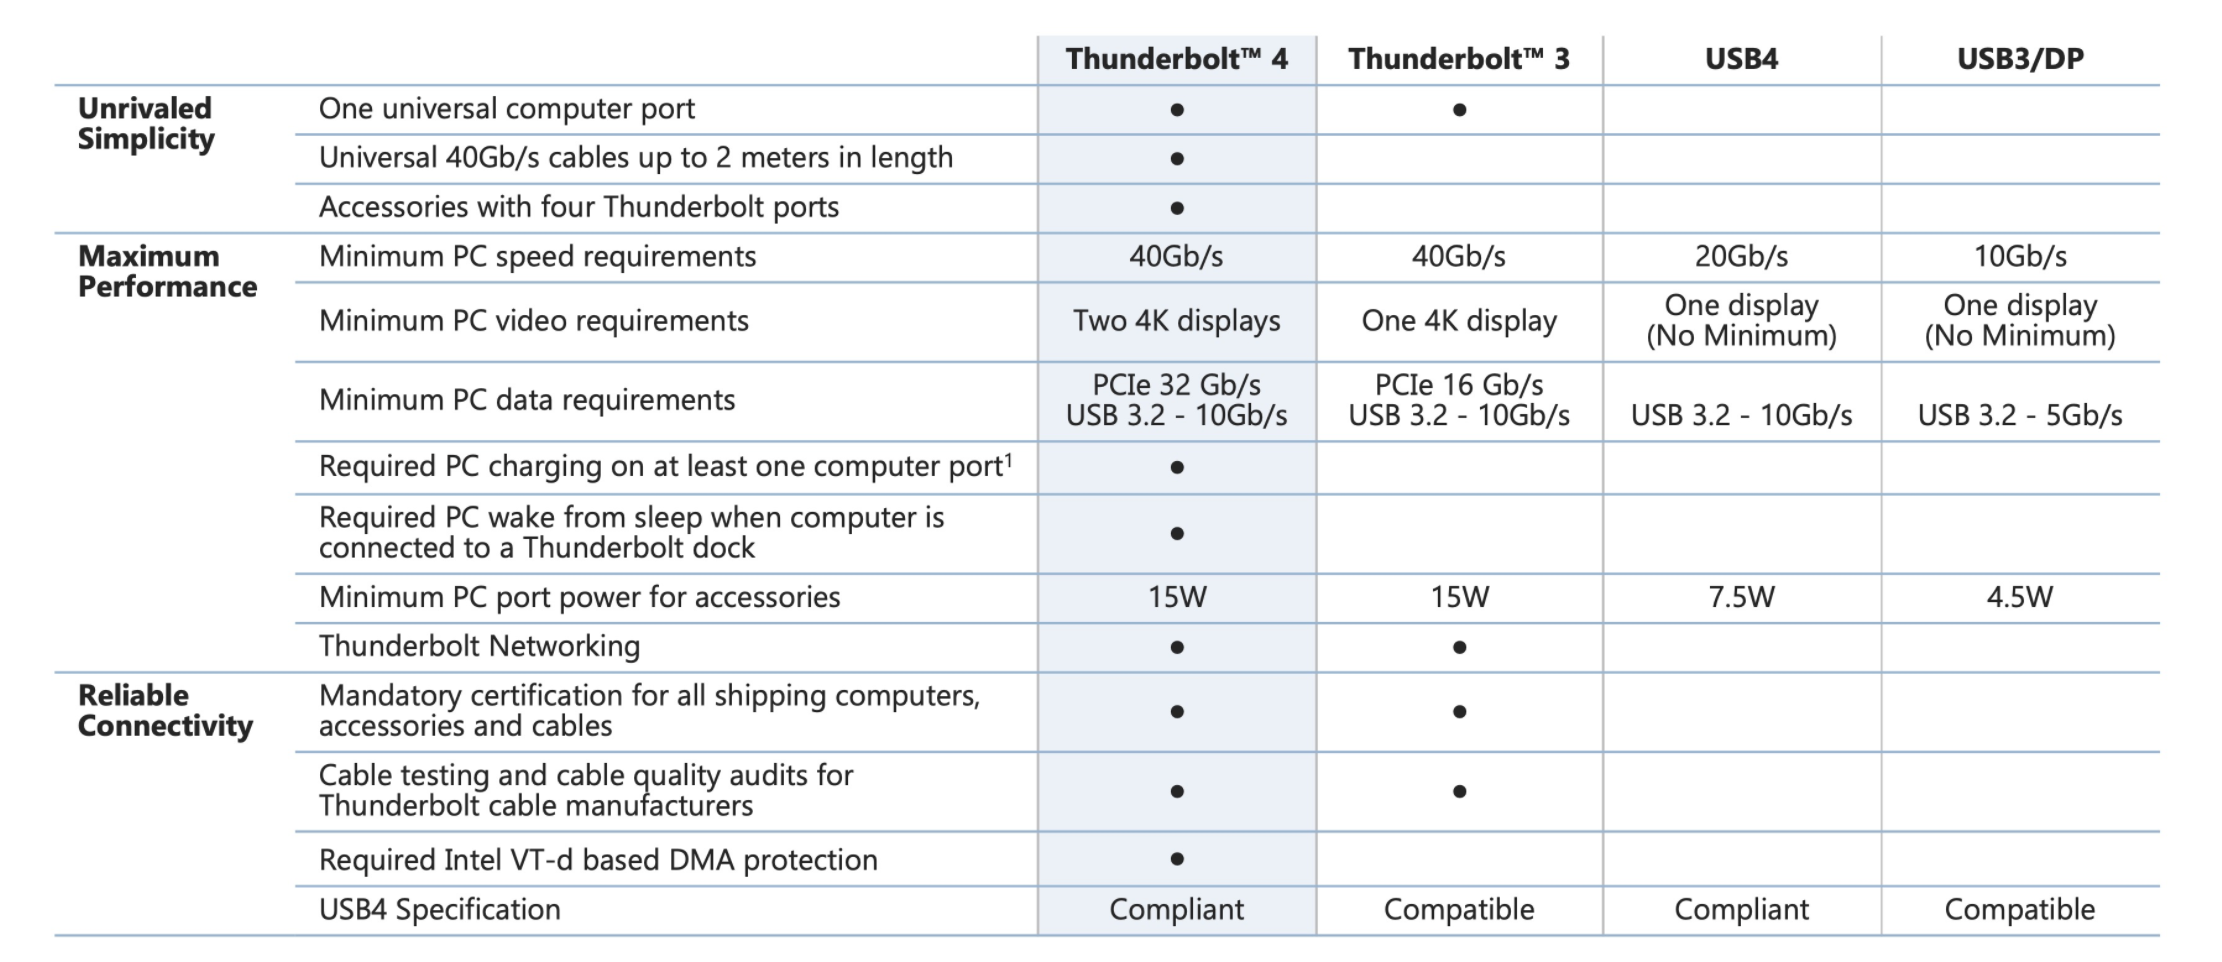 Intel Thunderbolt 4 Universal Cable Connectivity With